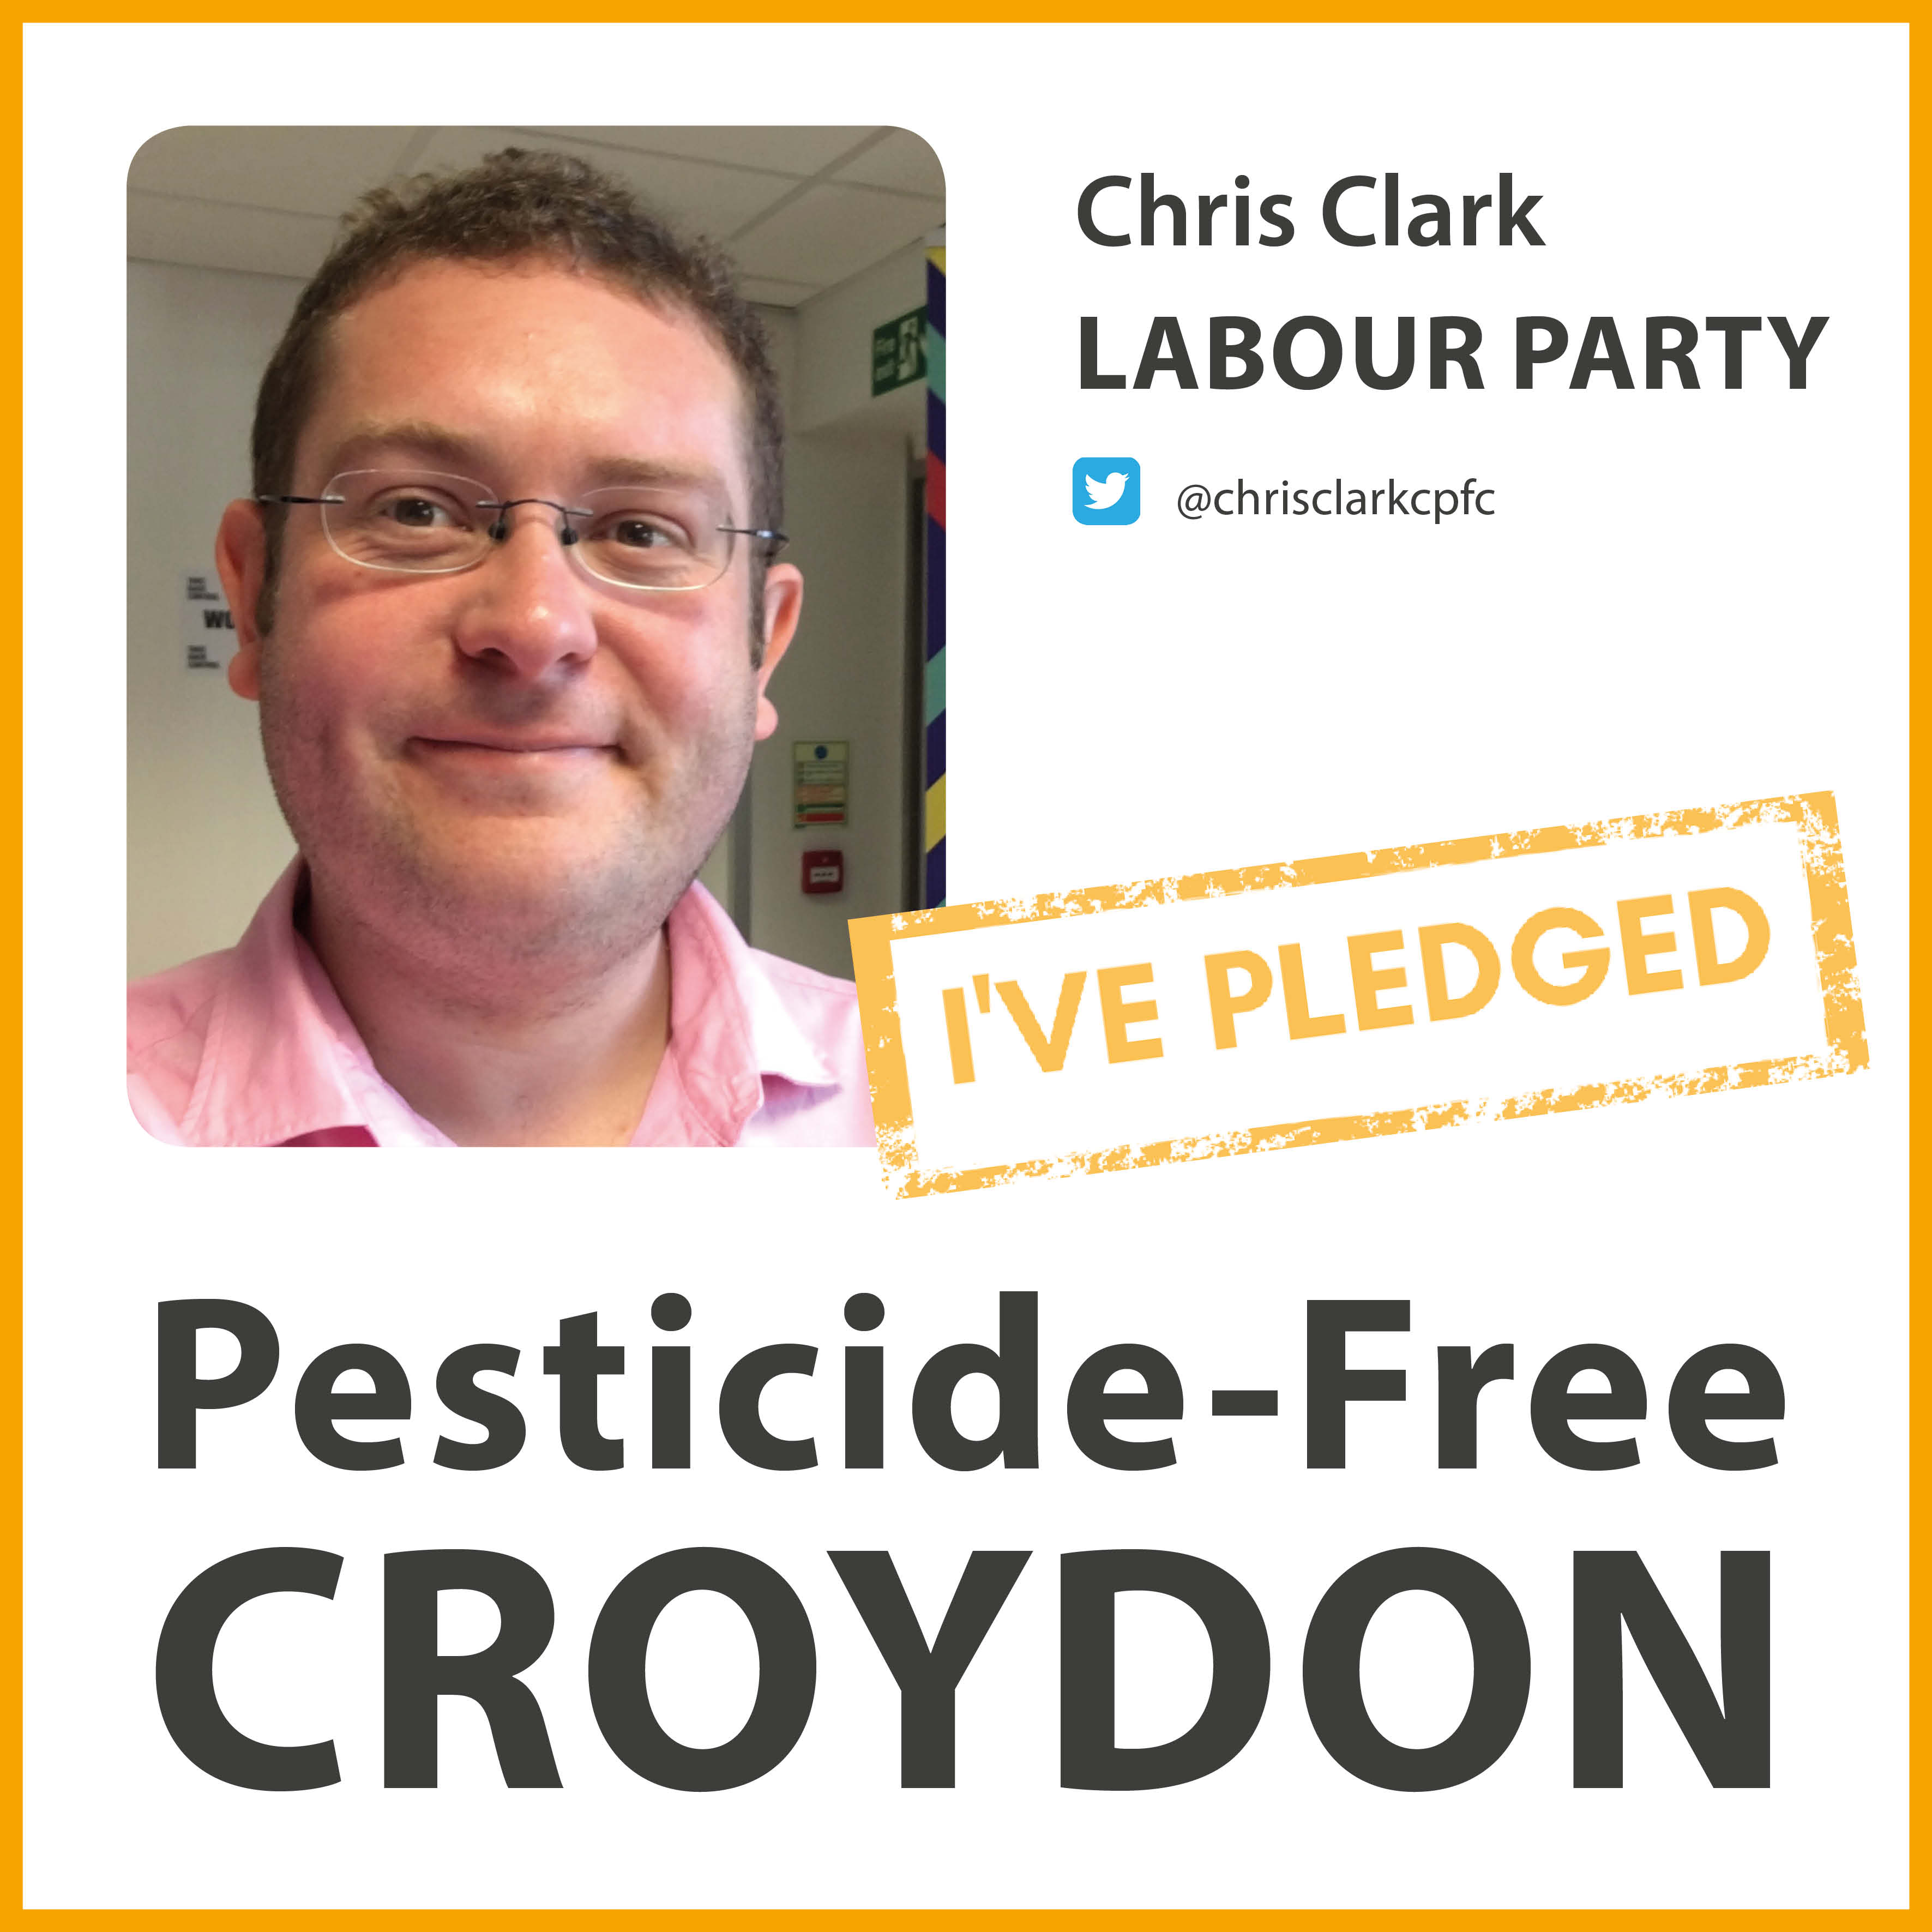 Chris Clark has taken the pesticide-free pledge in Croydon